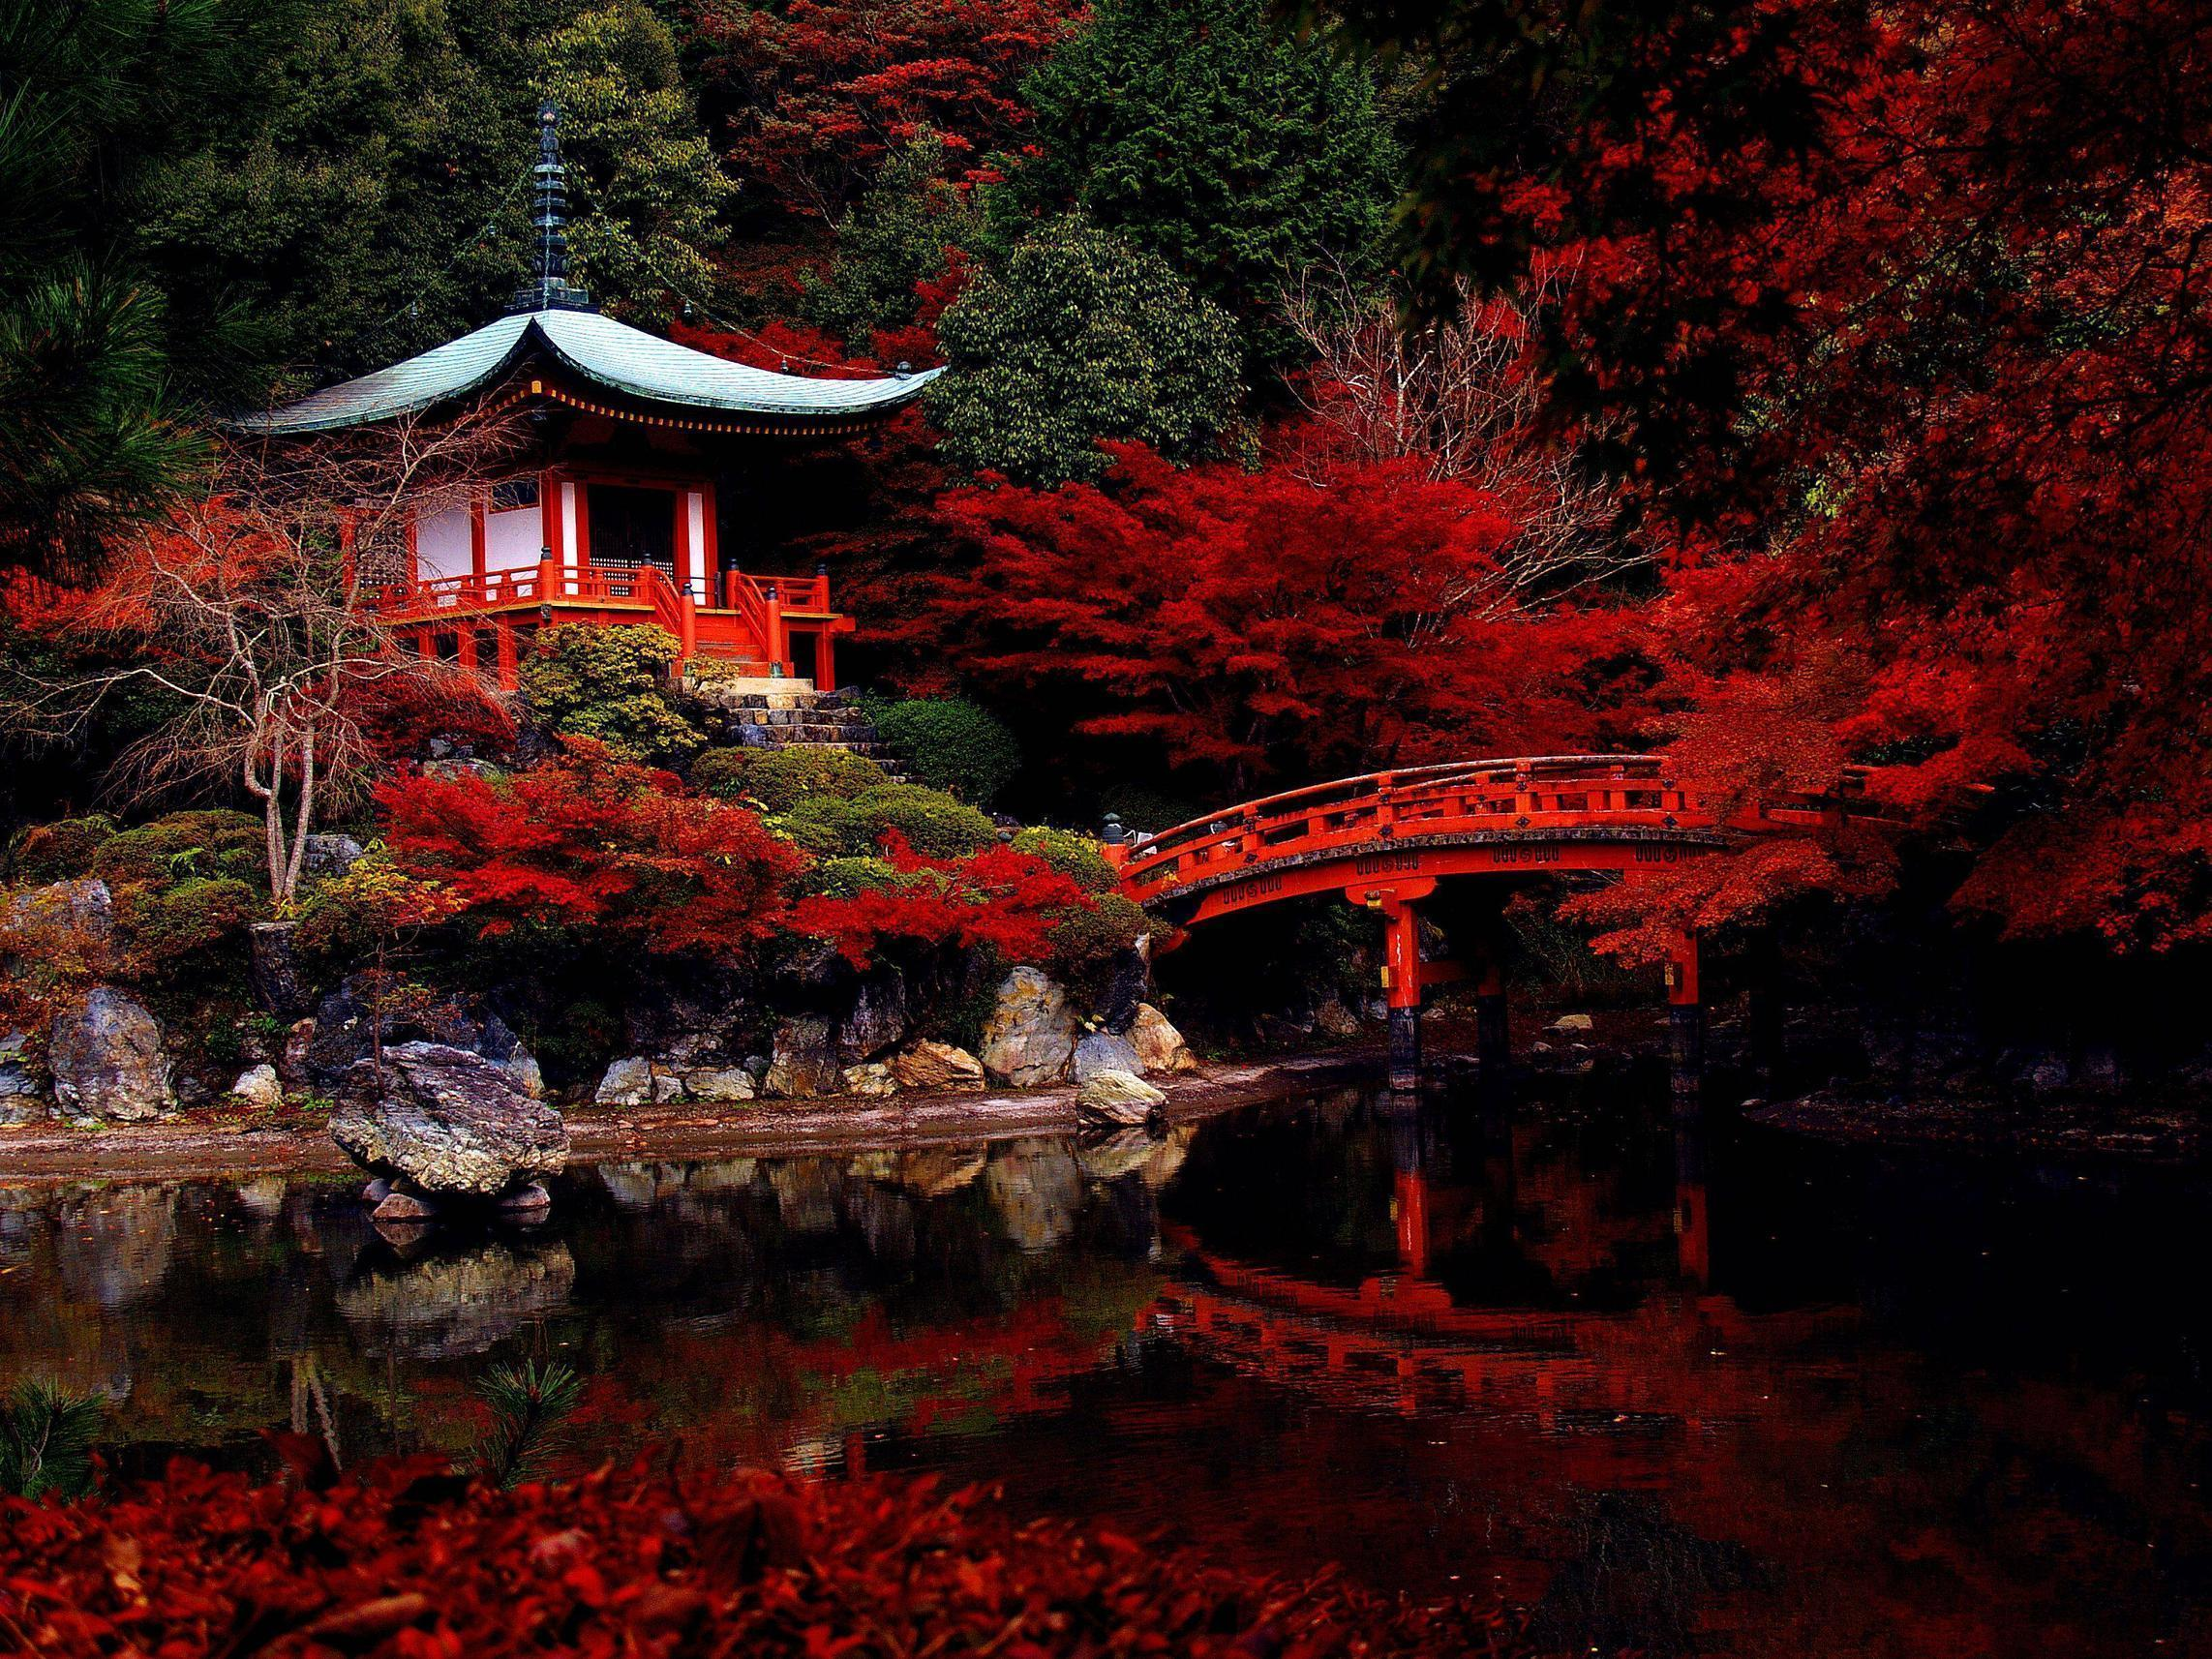 Wallpaper Japanischer Garten Japanese Garden Wallpapers Wallpaper Cave